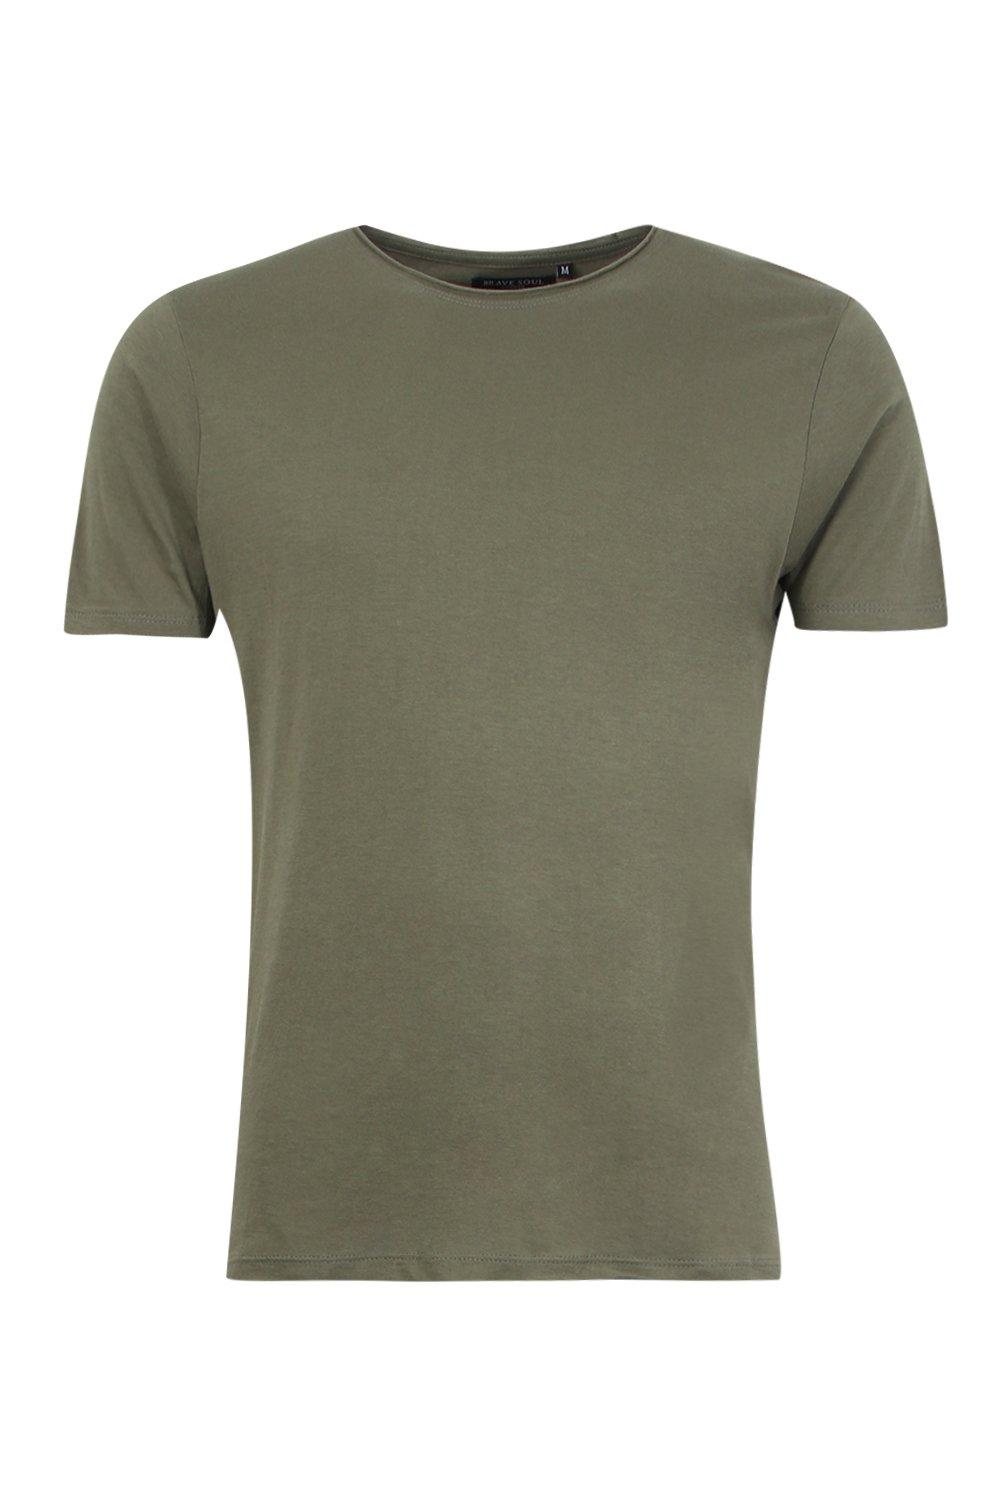 boohooMAN sage Raw Edge Crew Neck T-Shirt